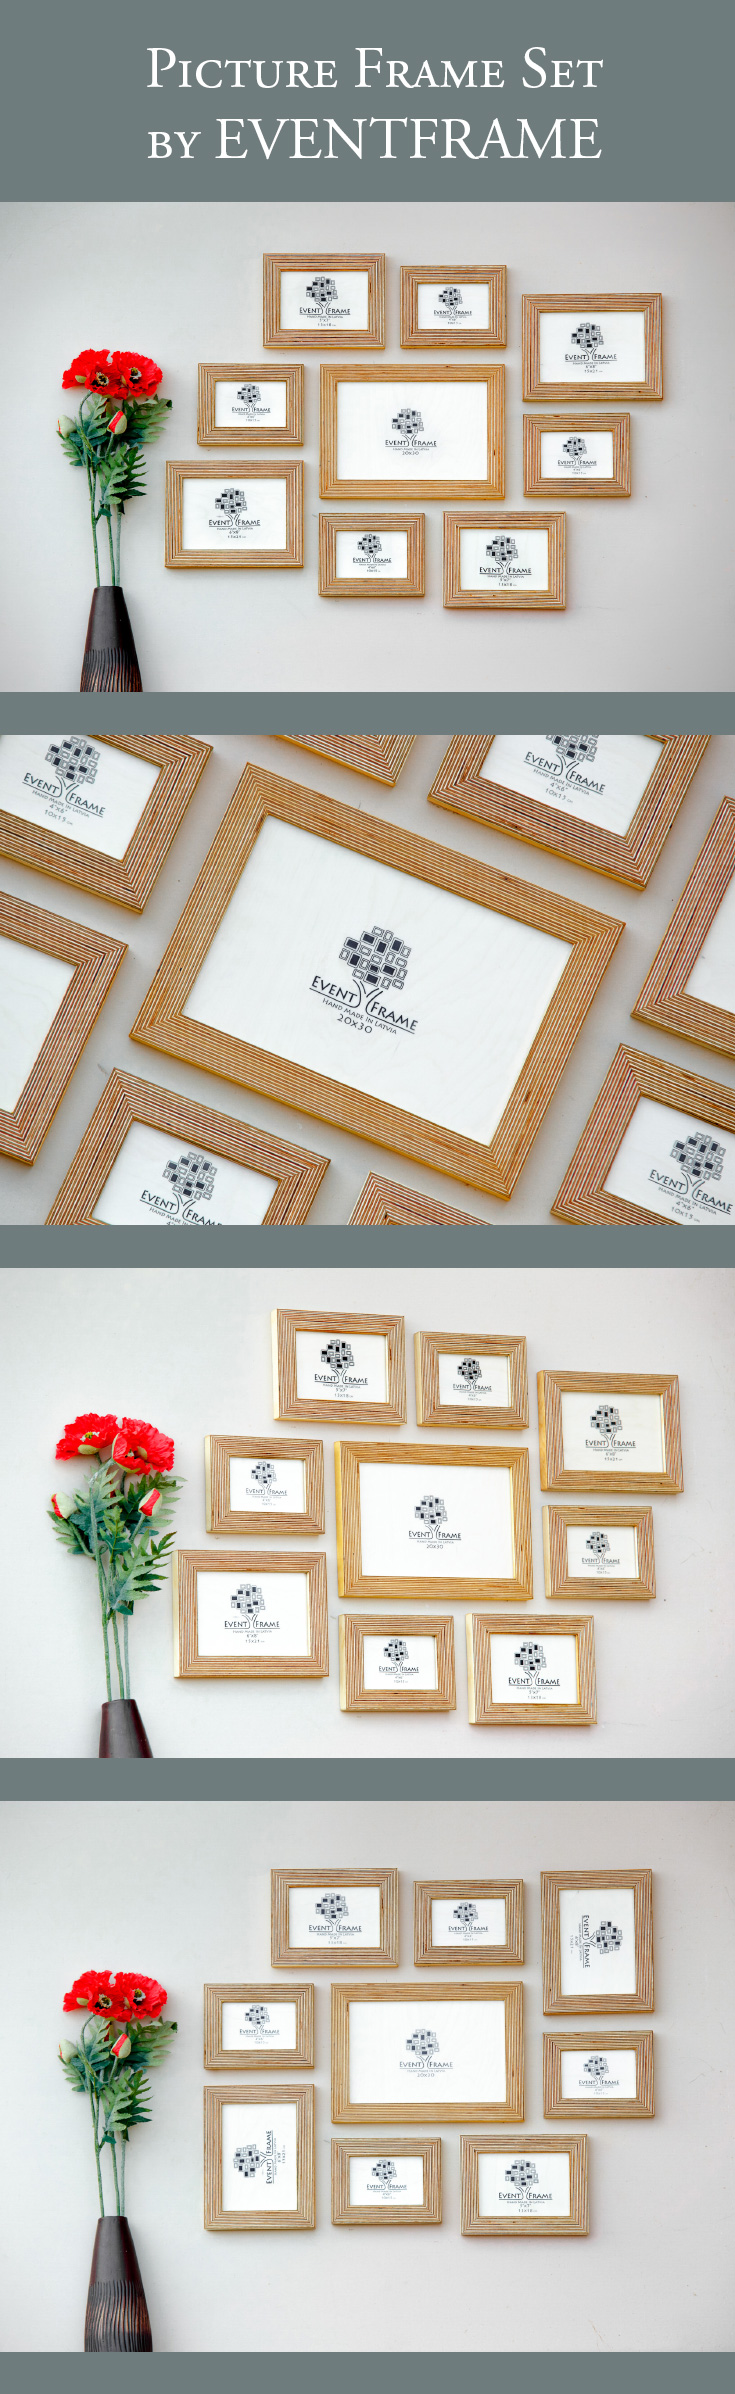 9 picture frame set rustic photo frame collage natural wood stripy plywood handmade chose your color sizes